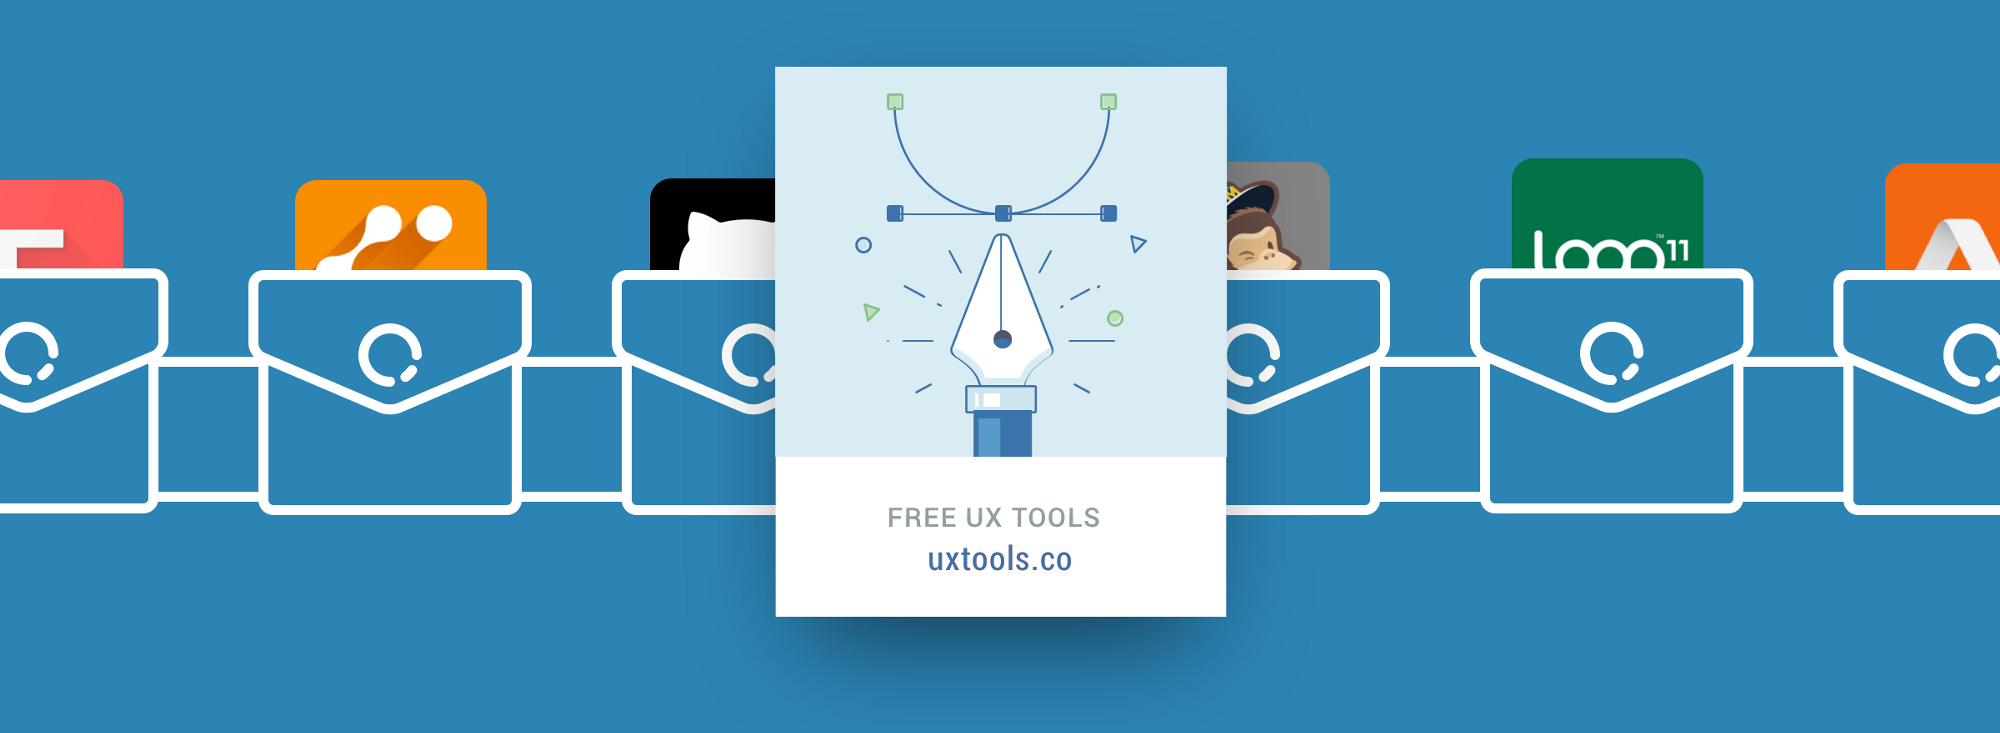 Tools to Create Your Next Project for Free – Uxtools.co – Medium